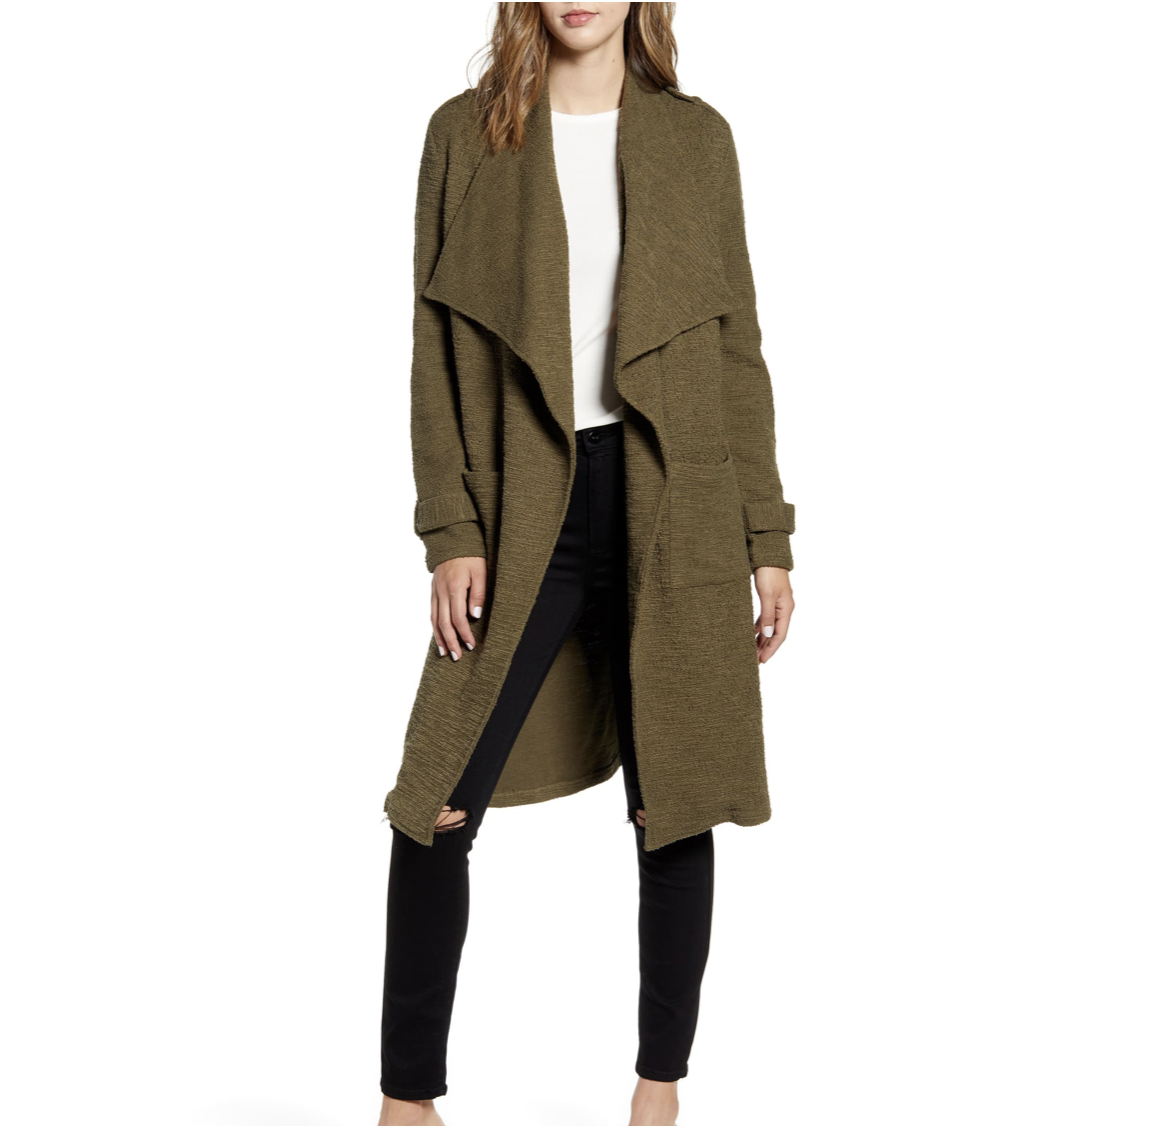 Olive Duster Cardigan | Nordstrom Anniversary Sale 2019 | A Demure Life Fashion Blog